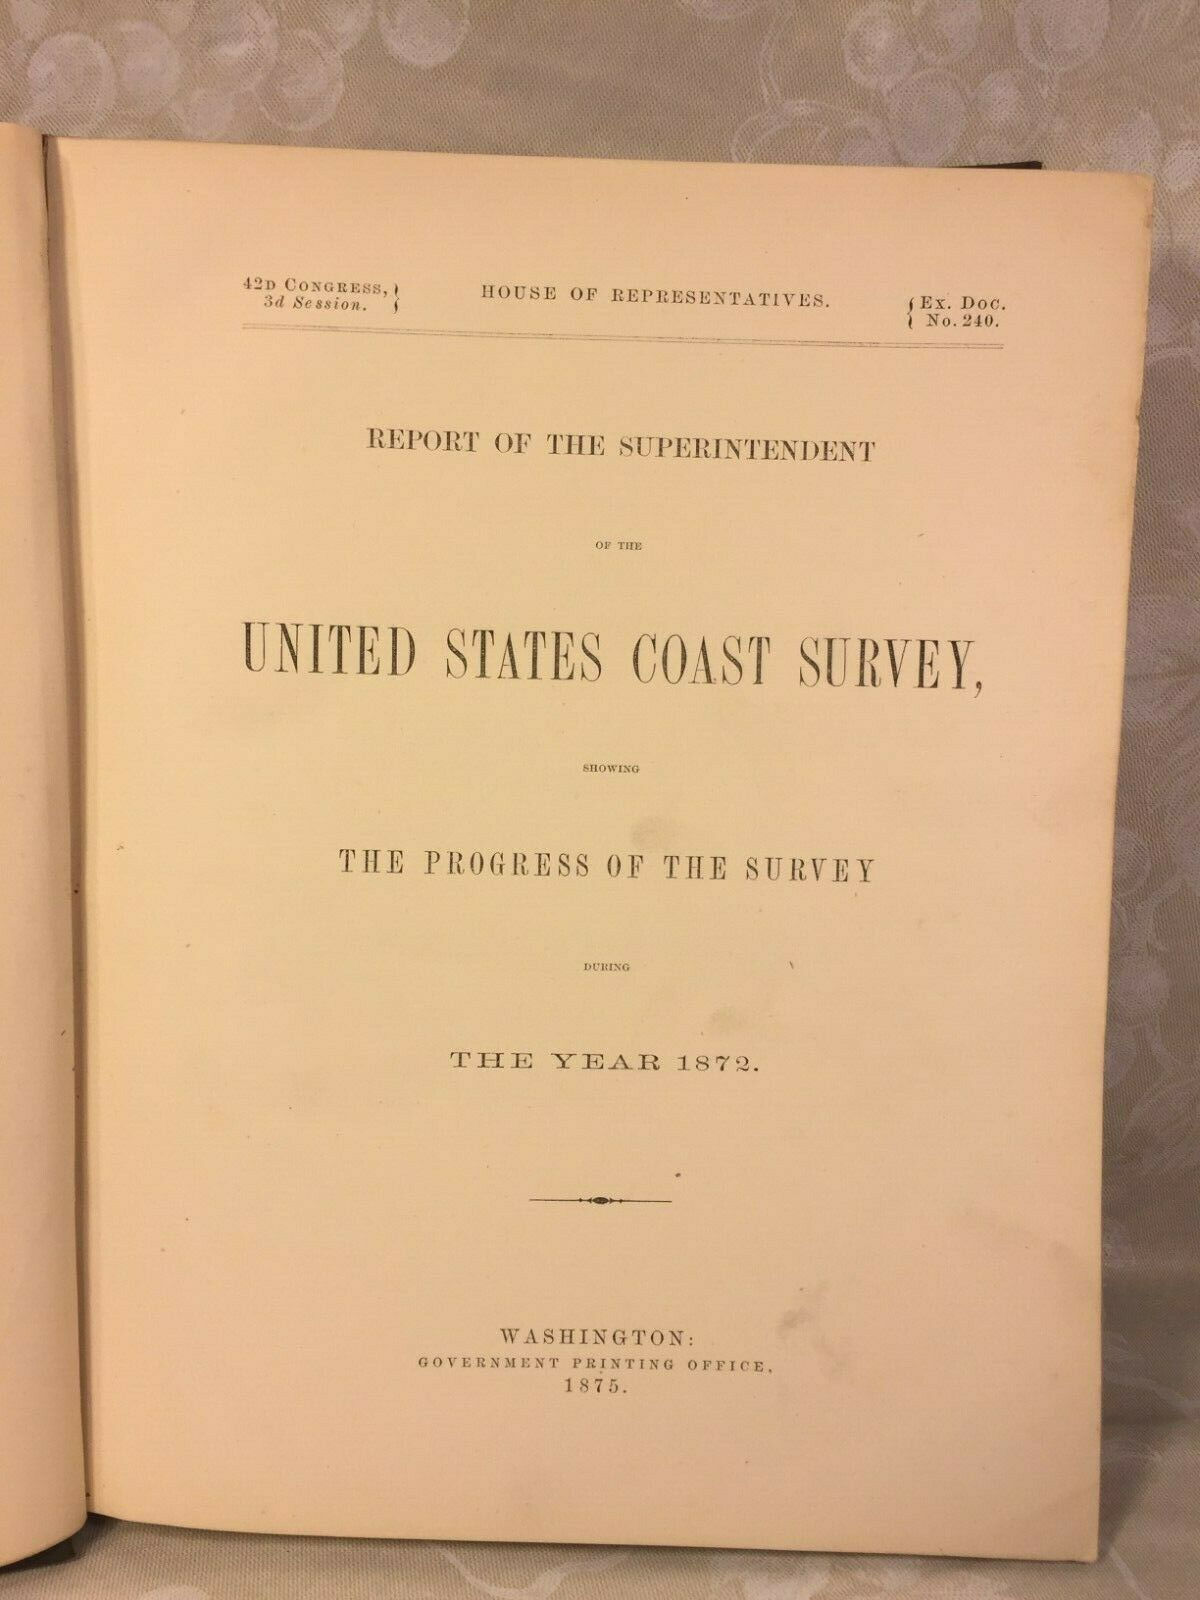 Report of the Superintendent of the United States Coast Survey 1872 Printed 1875